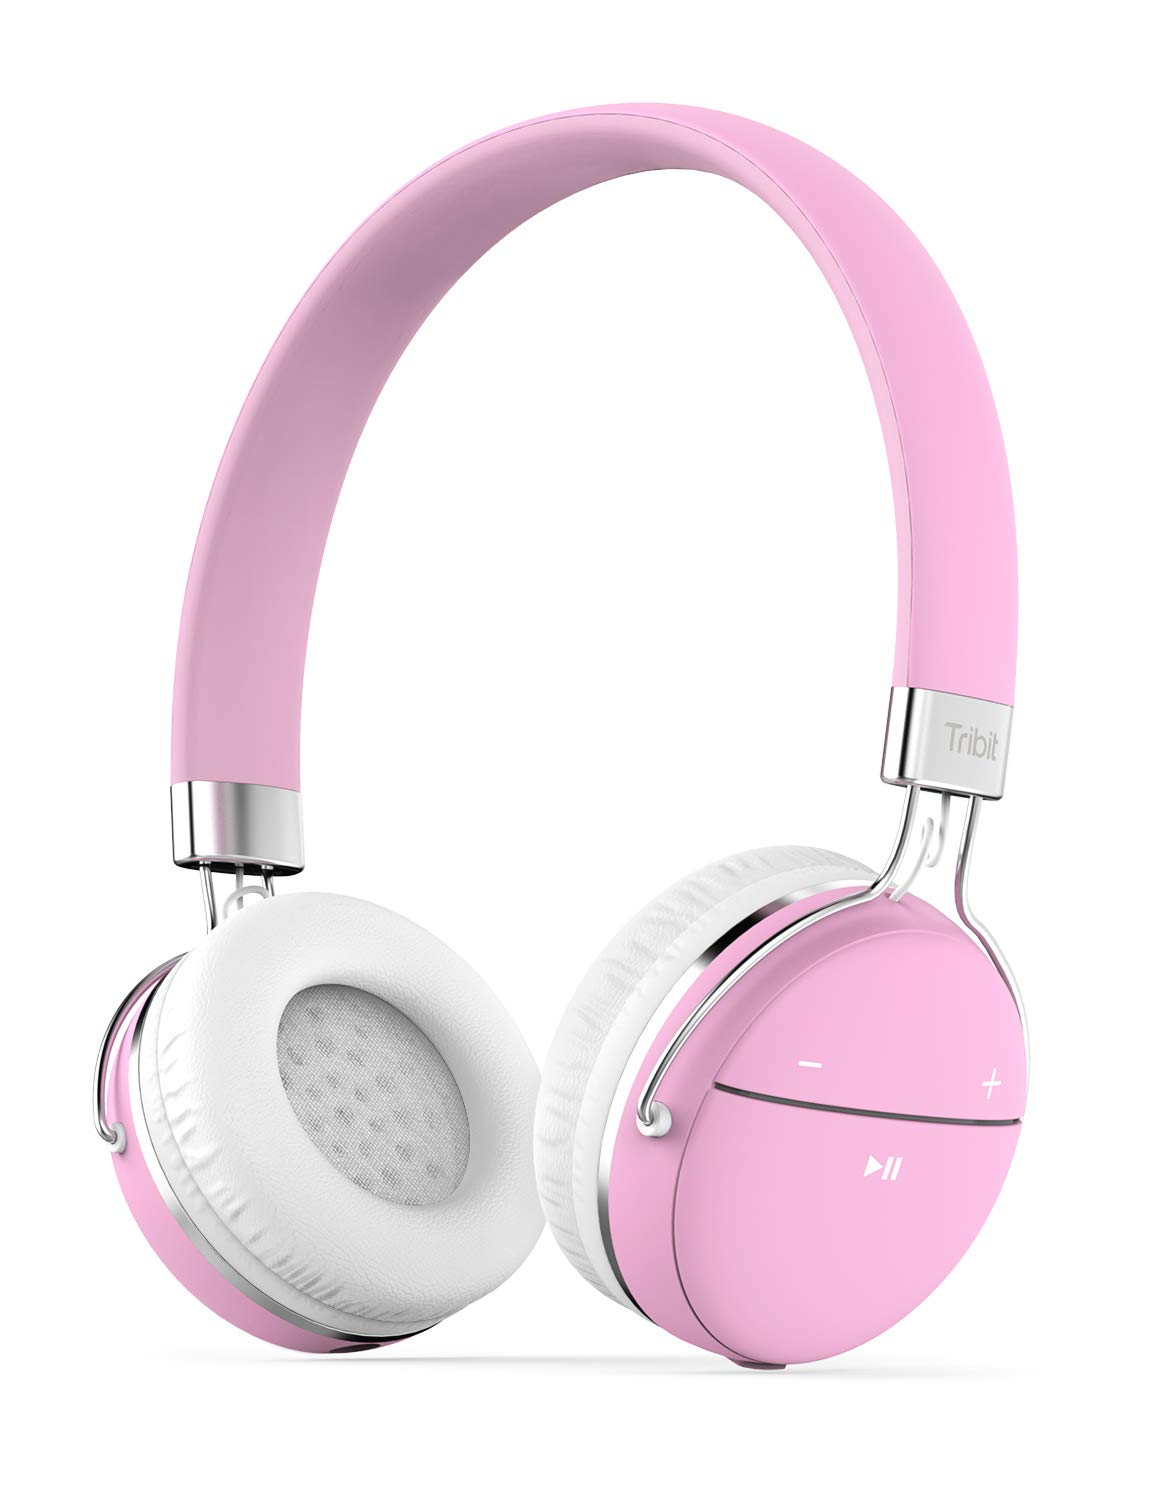 Amazon Com Tribit Xfree Move Bluetooth Headphones With Mic Wireless Headphones For Girls Dual Modes Long Playtime Hi Fi Stereo Sound With Rich Bass Lightweight Headphones For Women Carnation Pink Electronics